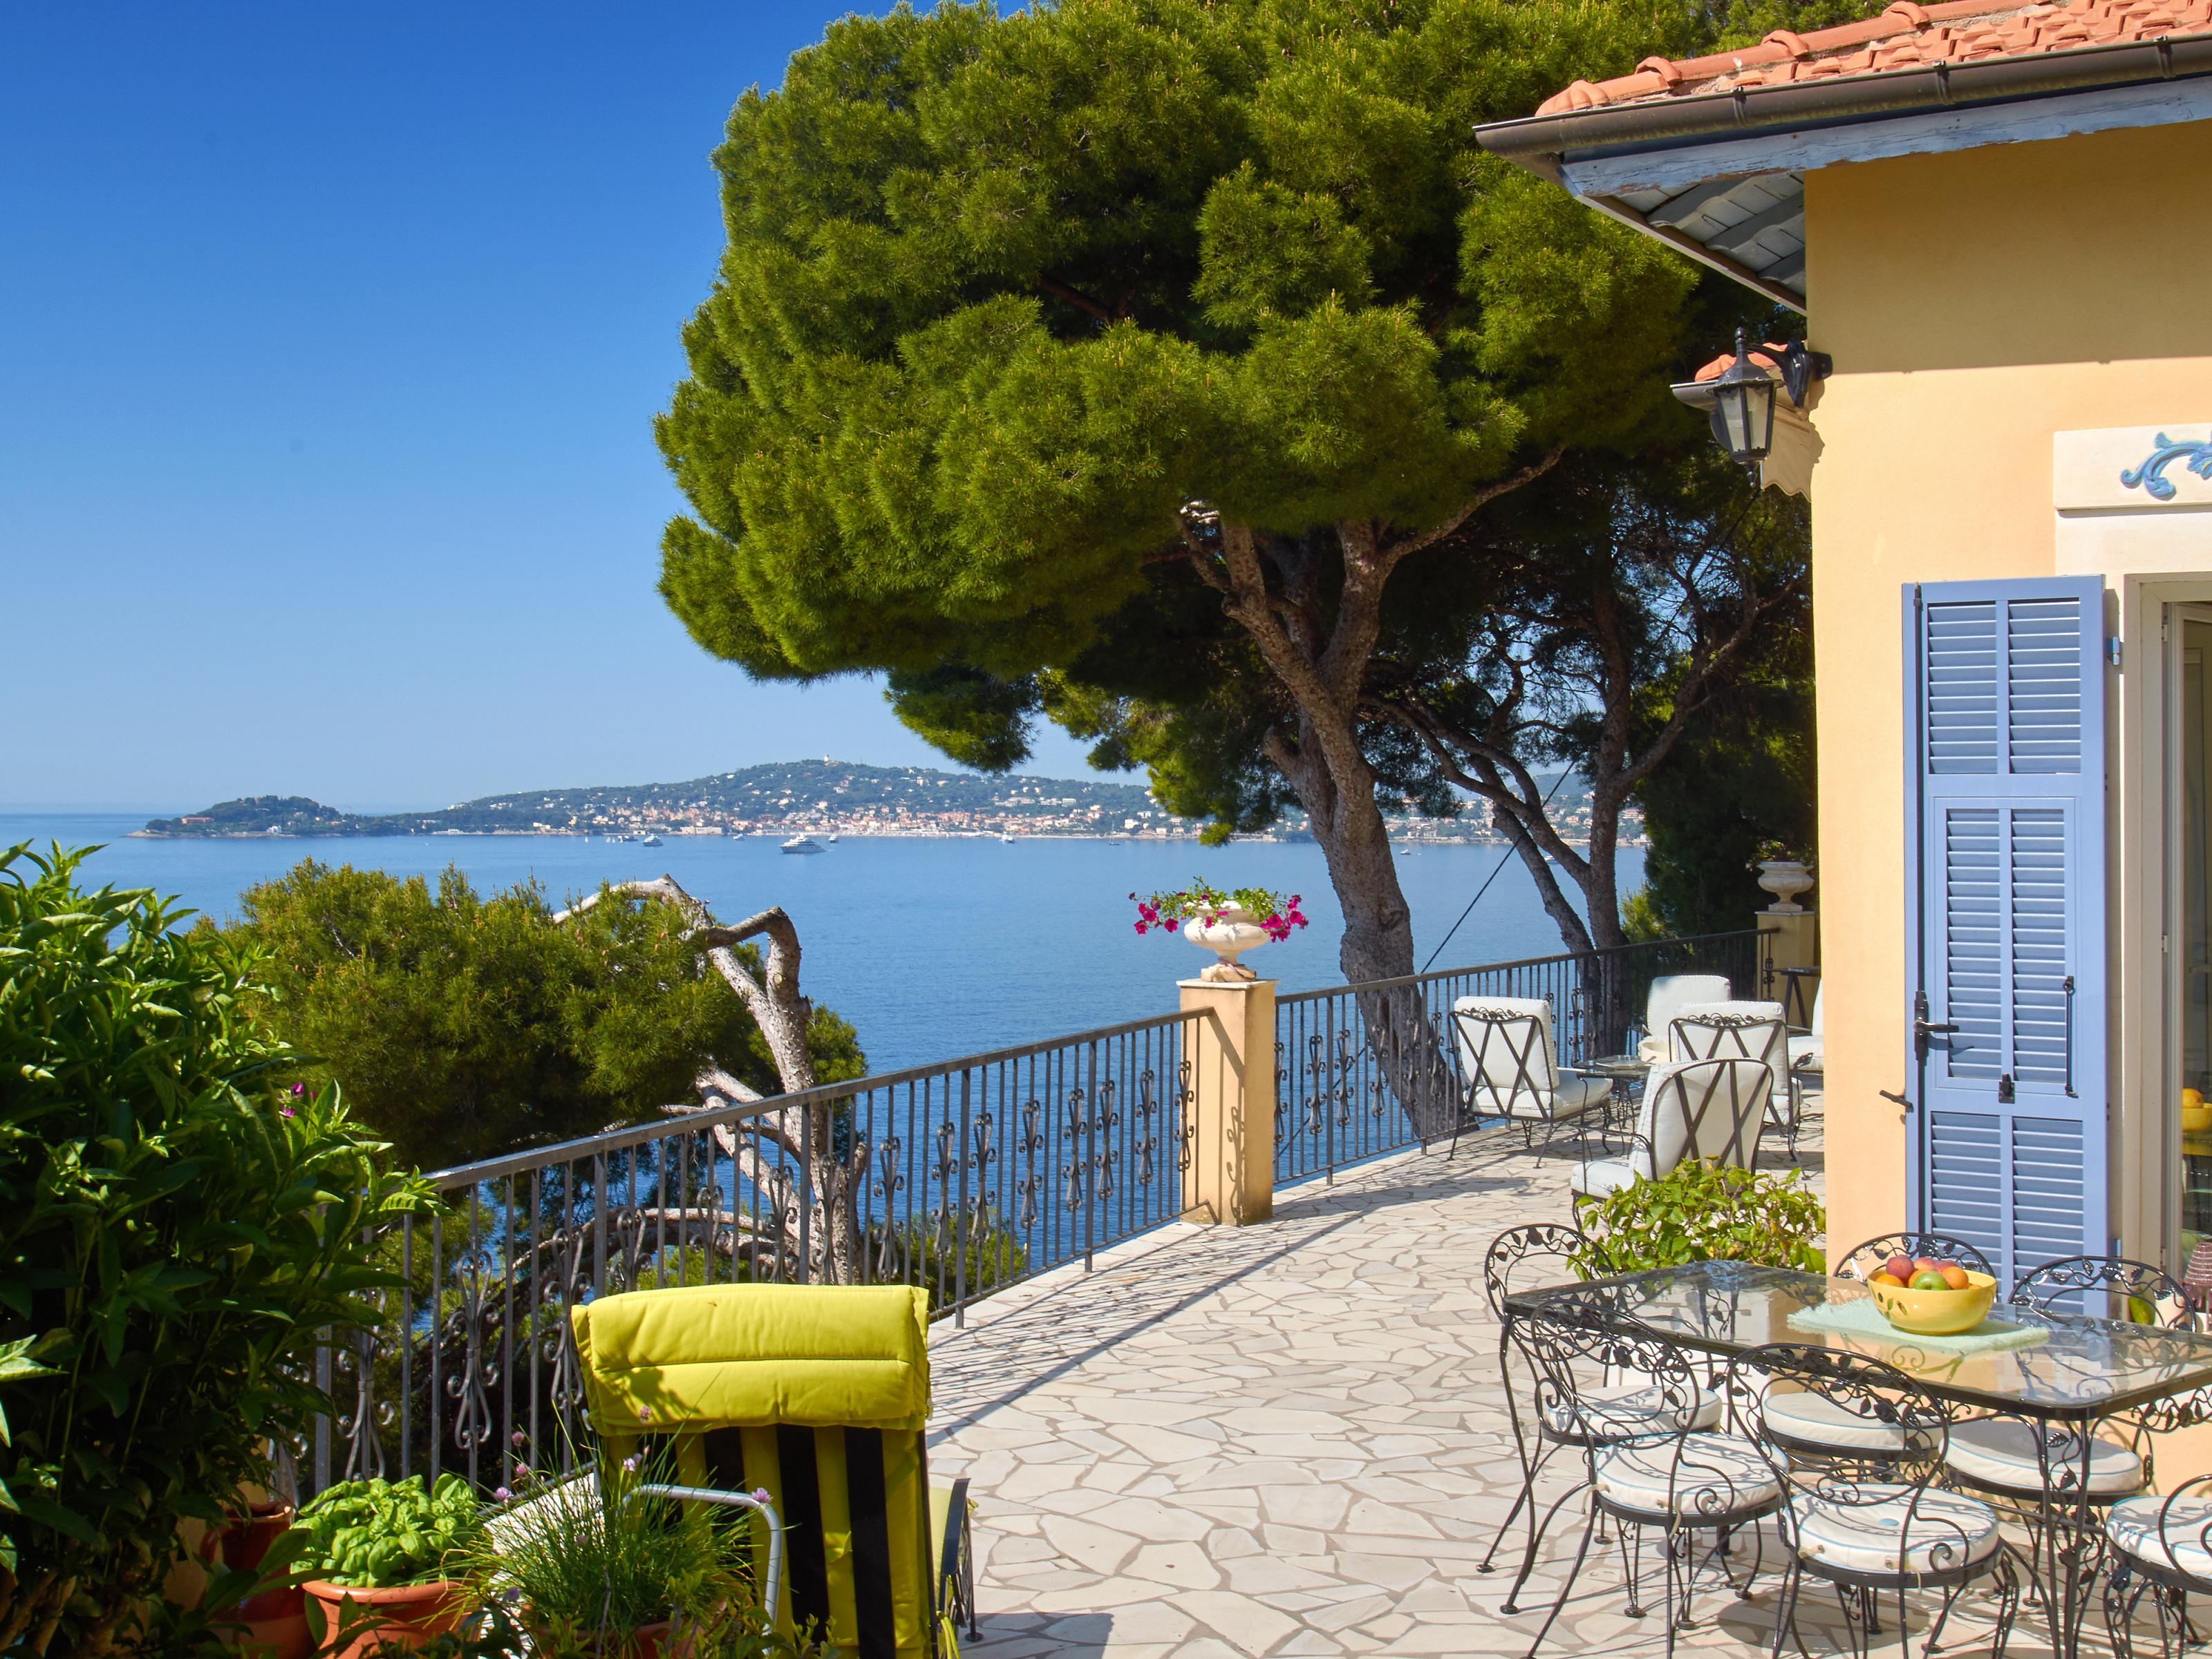 Single Family Home for Sale at Charming single-storey house with panoramic sea views Eze sur Mer Other Provence-Alpes-Cote D'Azur, Provence-Alpes-Cote D'Azur 06360 France